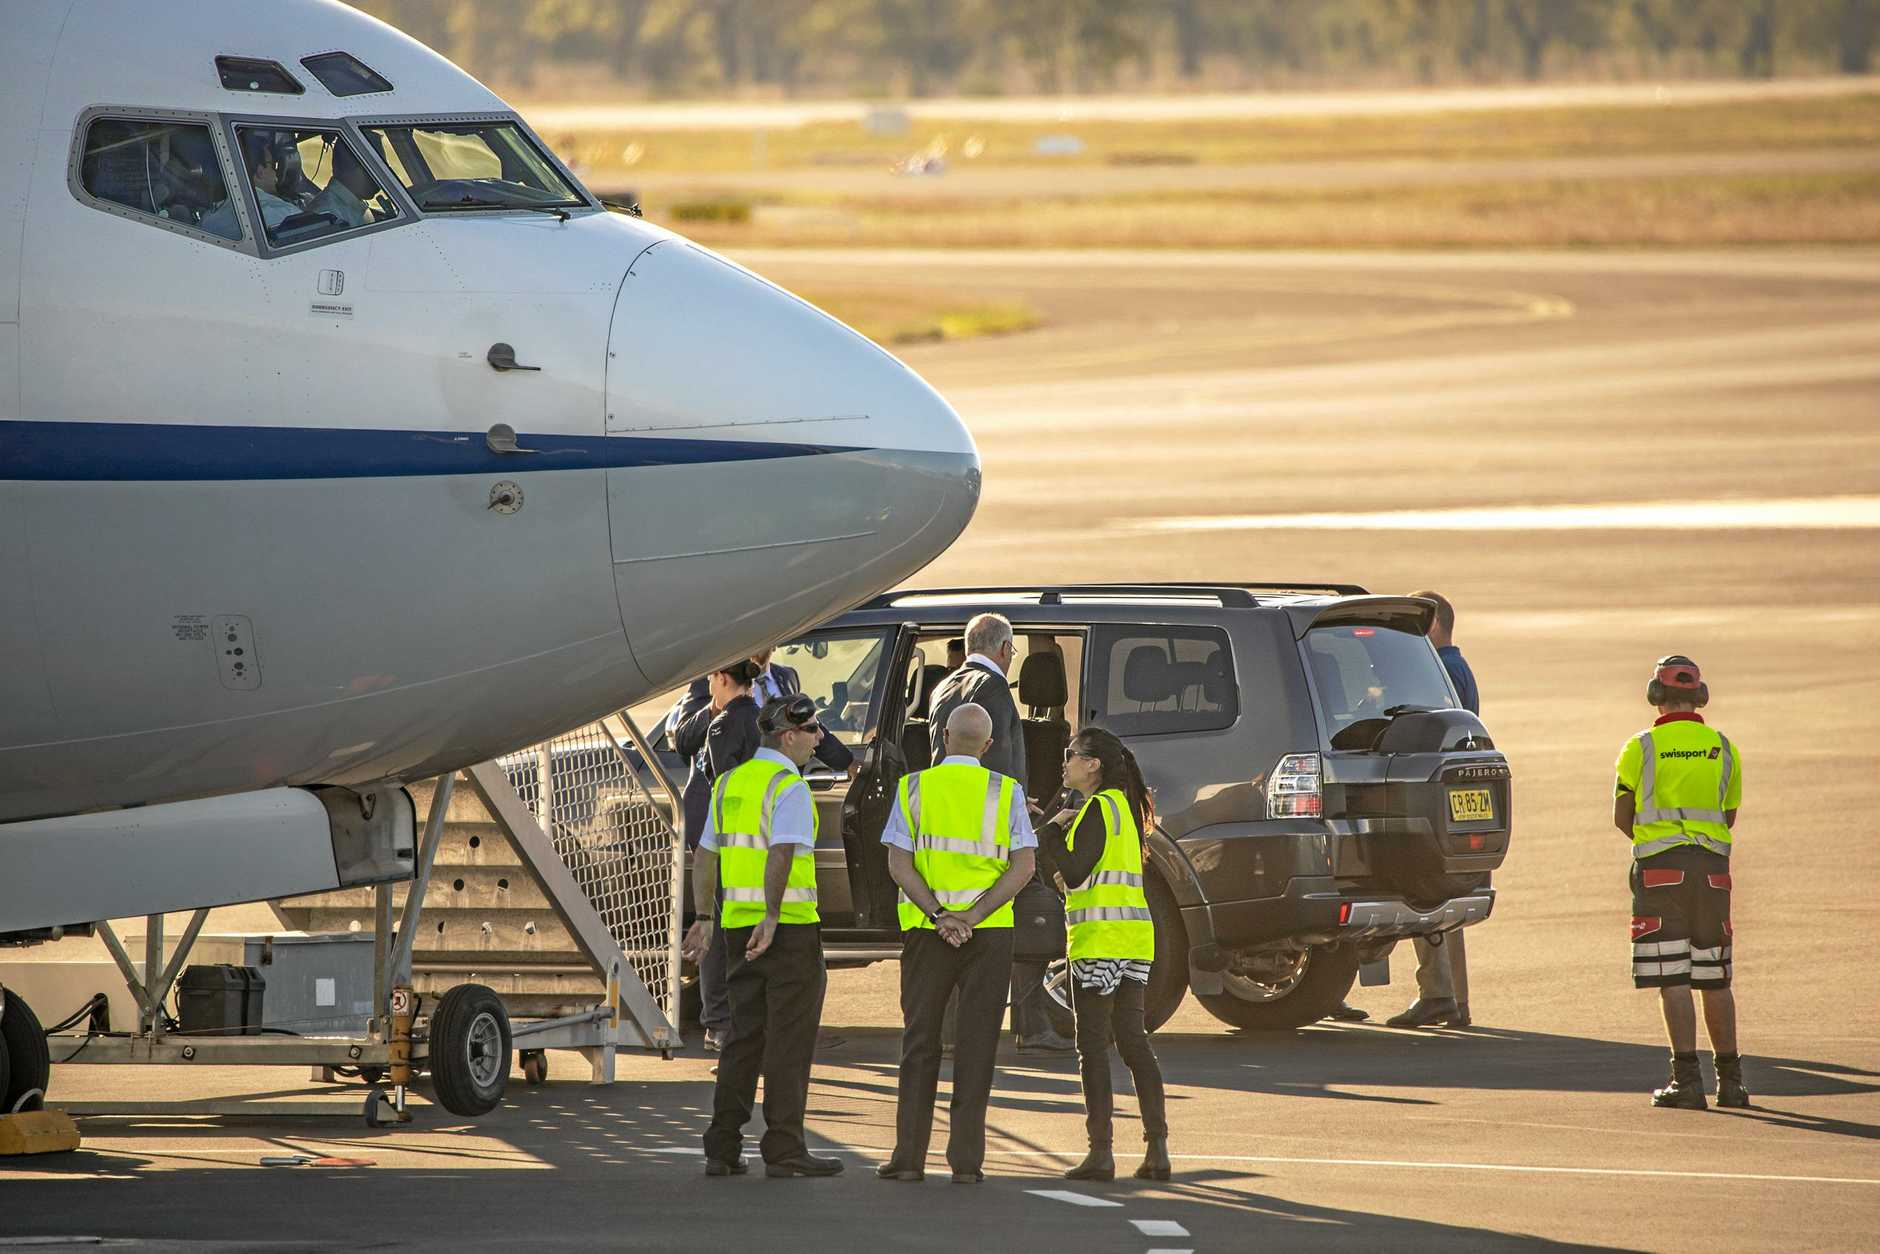 Prime Minister Scott Morrison arriving at Rockhampton Airport aboard his RAAF 737 VIP transport.